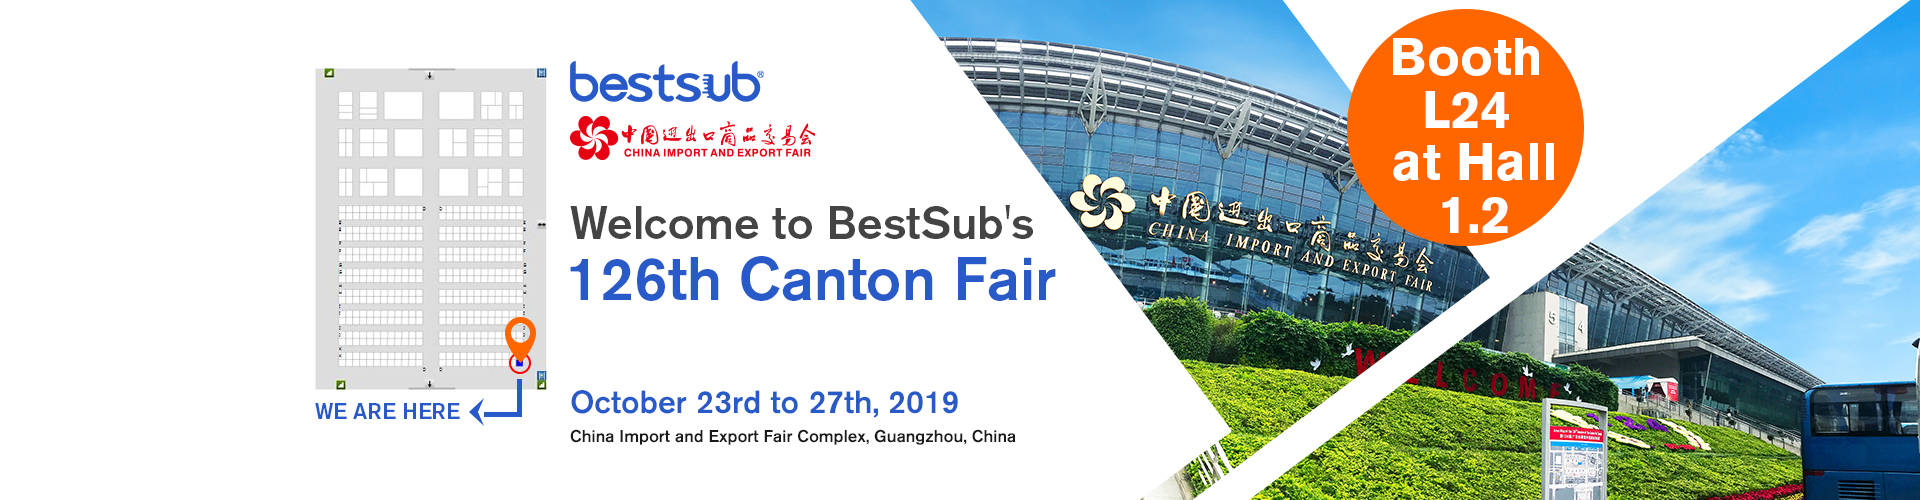 2019-9-30_Welcome-to-BestSub-s_126th_Canton_Fair_Booth_L24_at_Hall_1_new_web